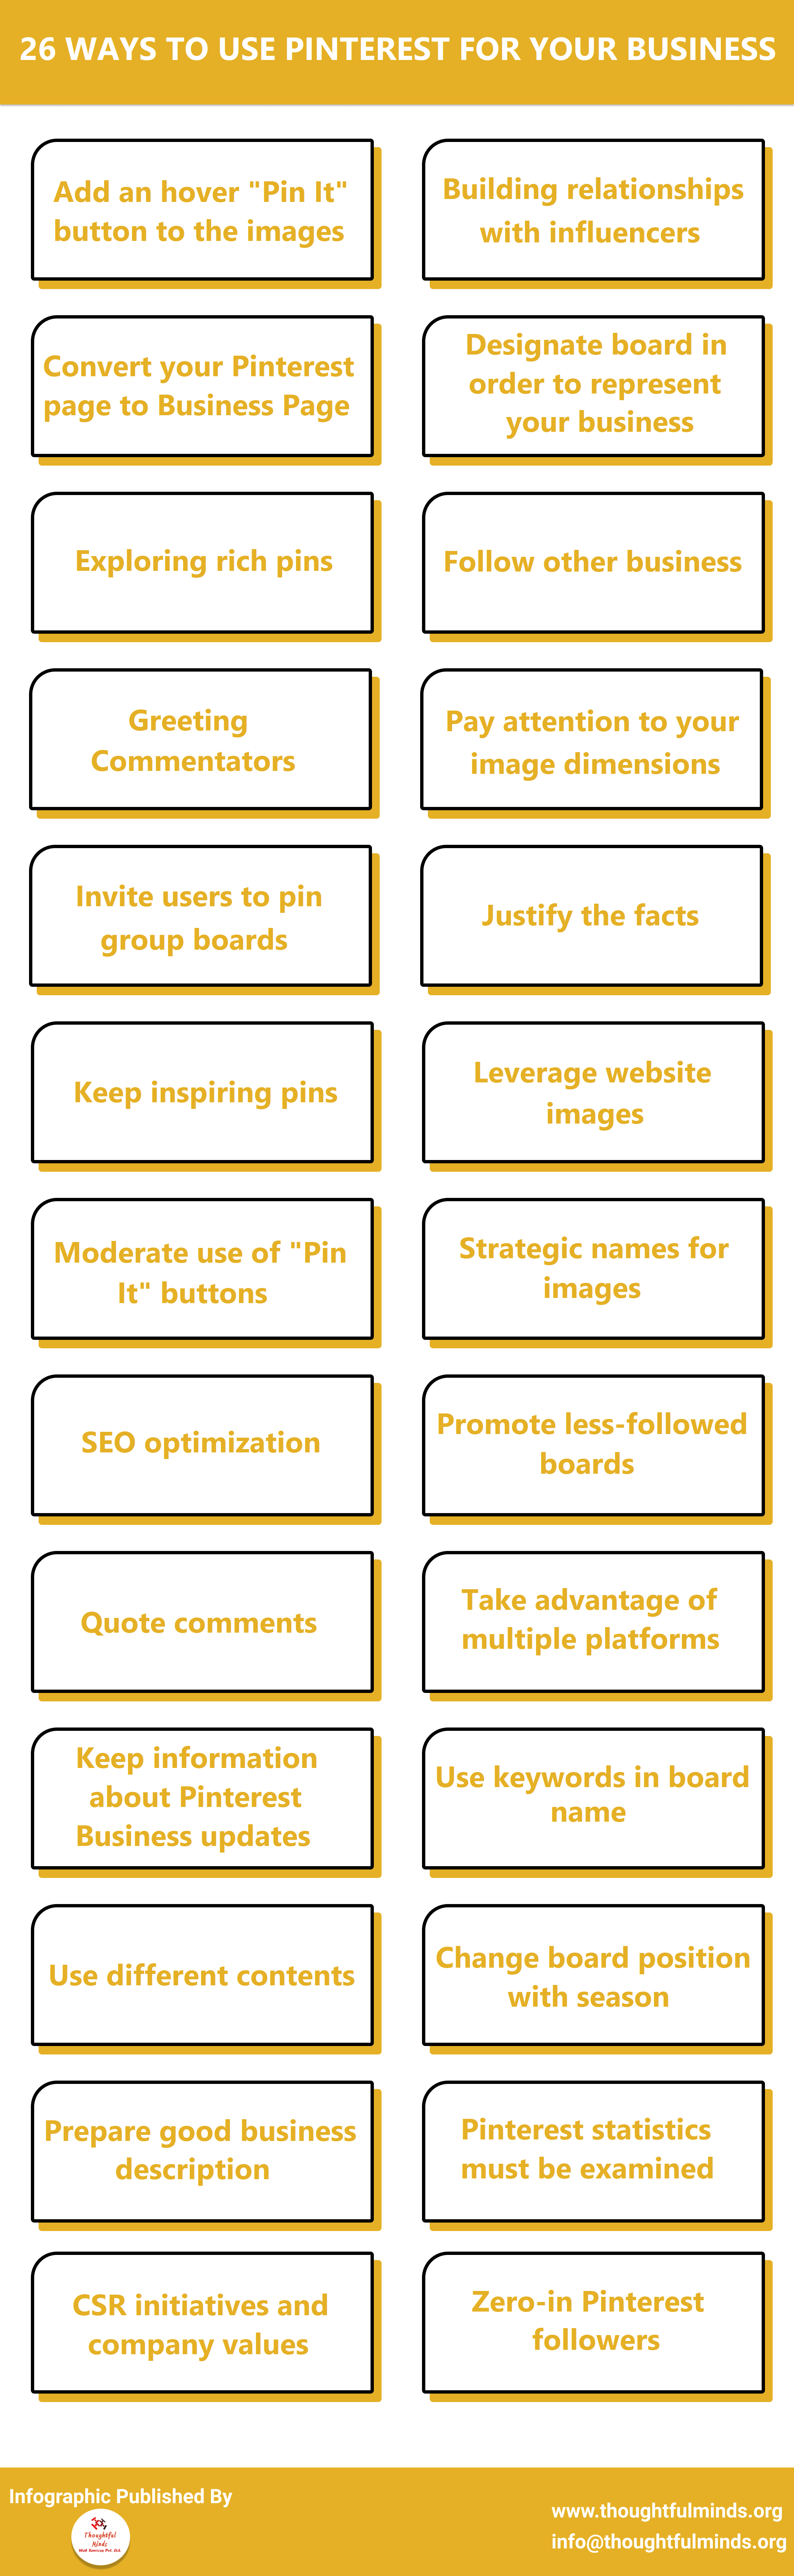 Infographic On 26 Ways To Use Pinterest For Your Business - ThoughtfulMinds